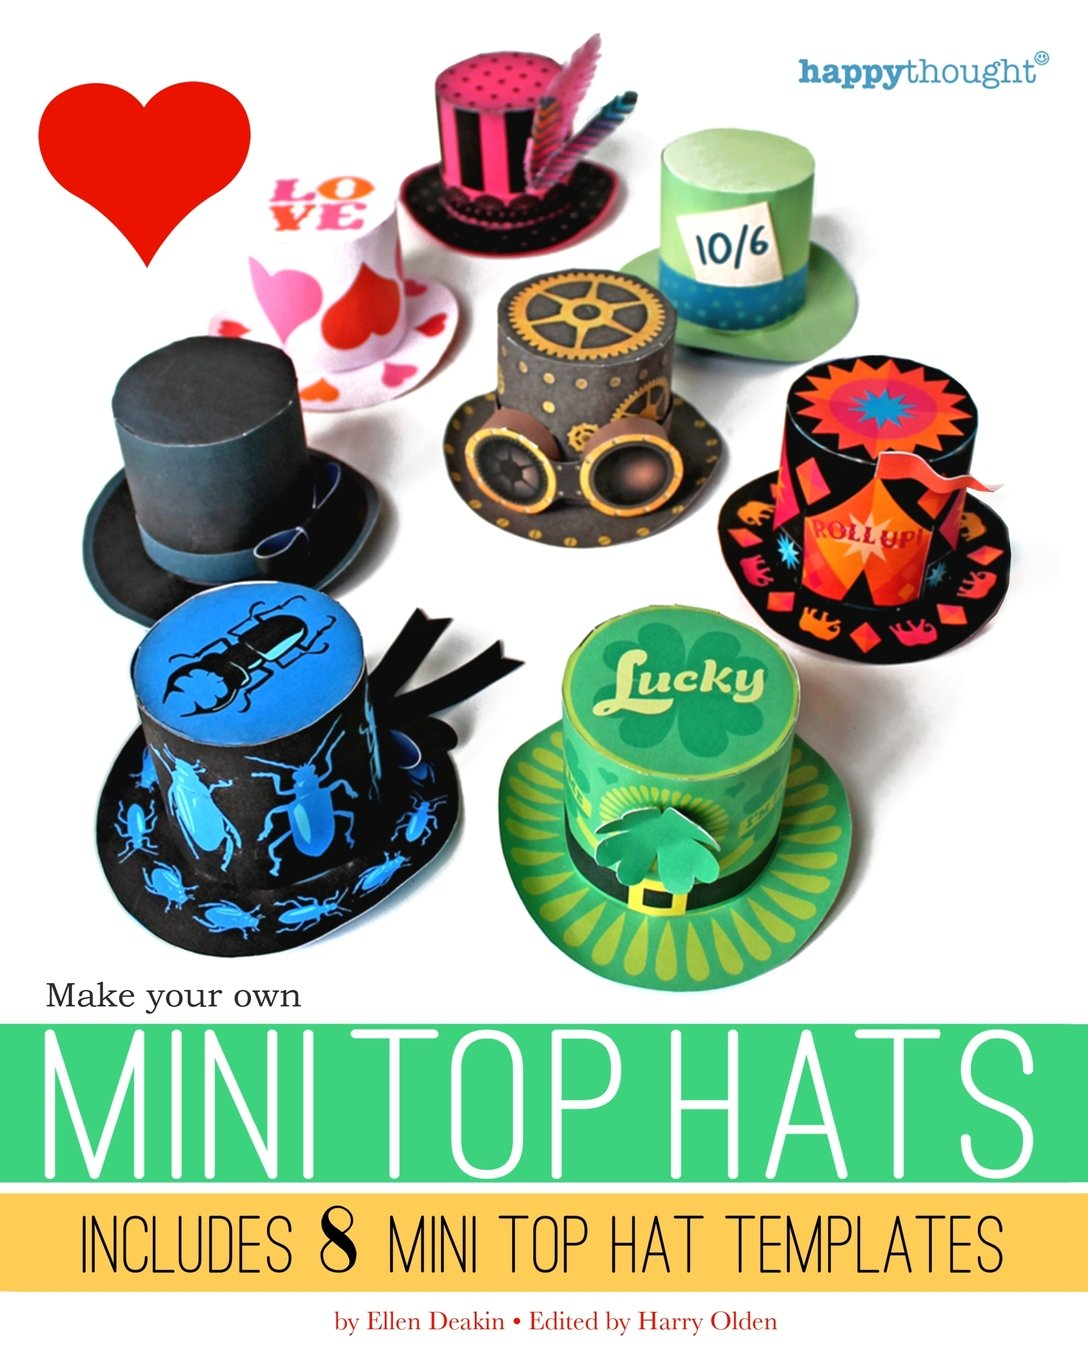 make your own mini top hats plus 8 mini top hat templates